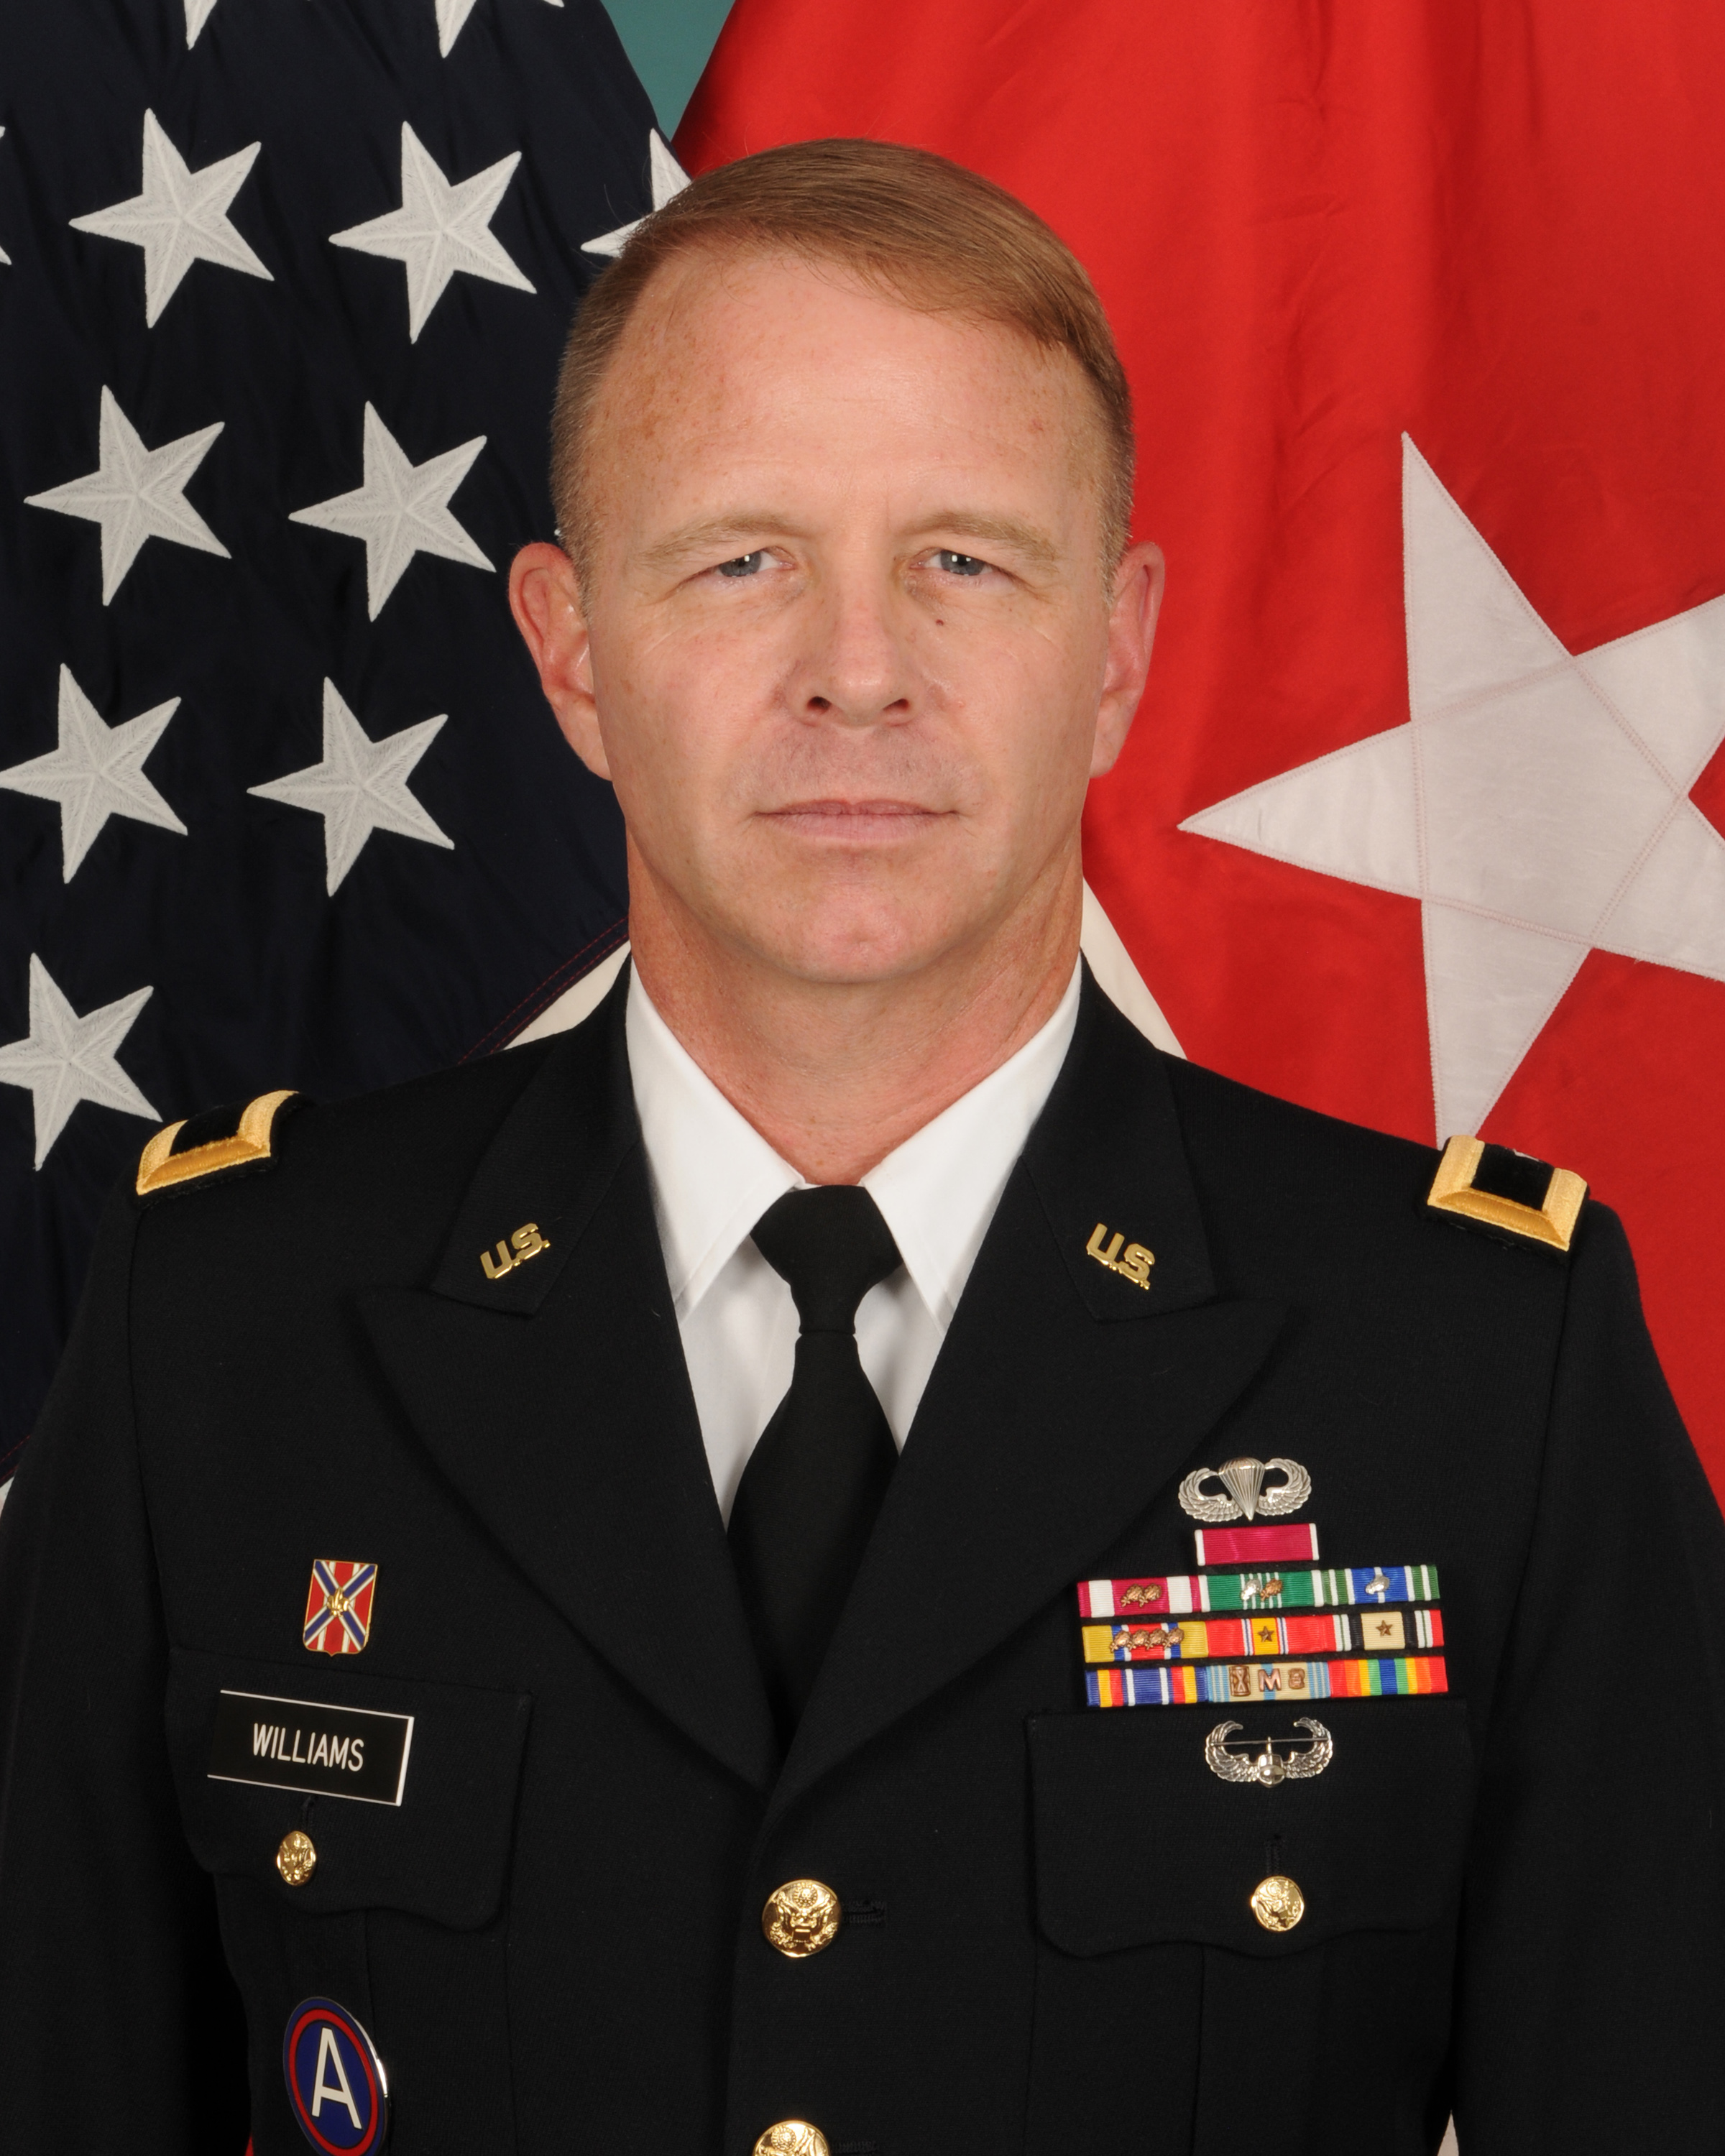 Brig. Gen. Timothy P. Williams